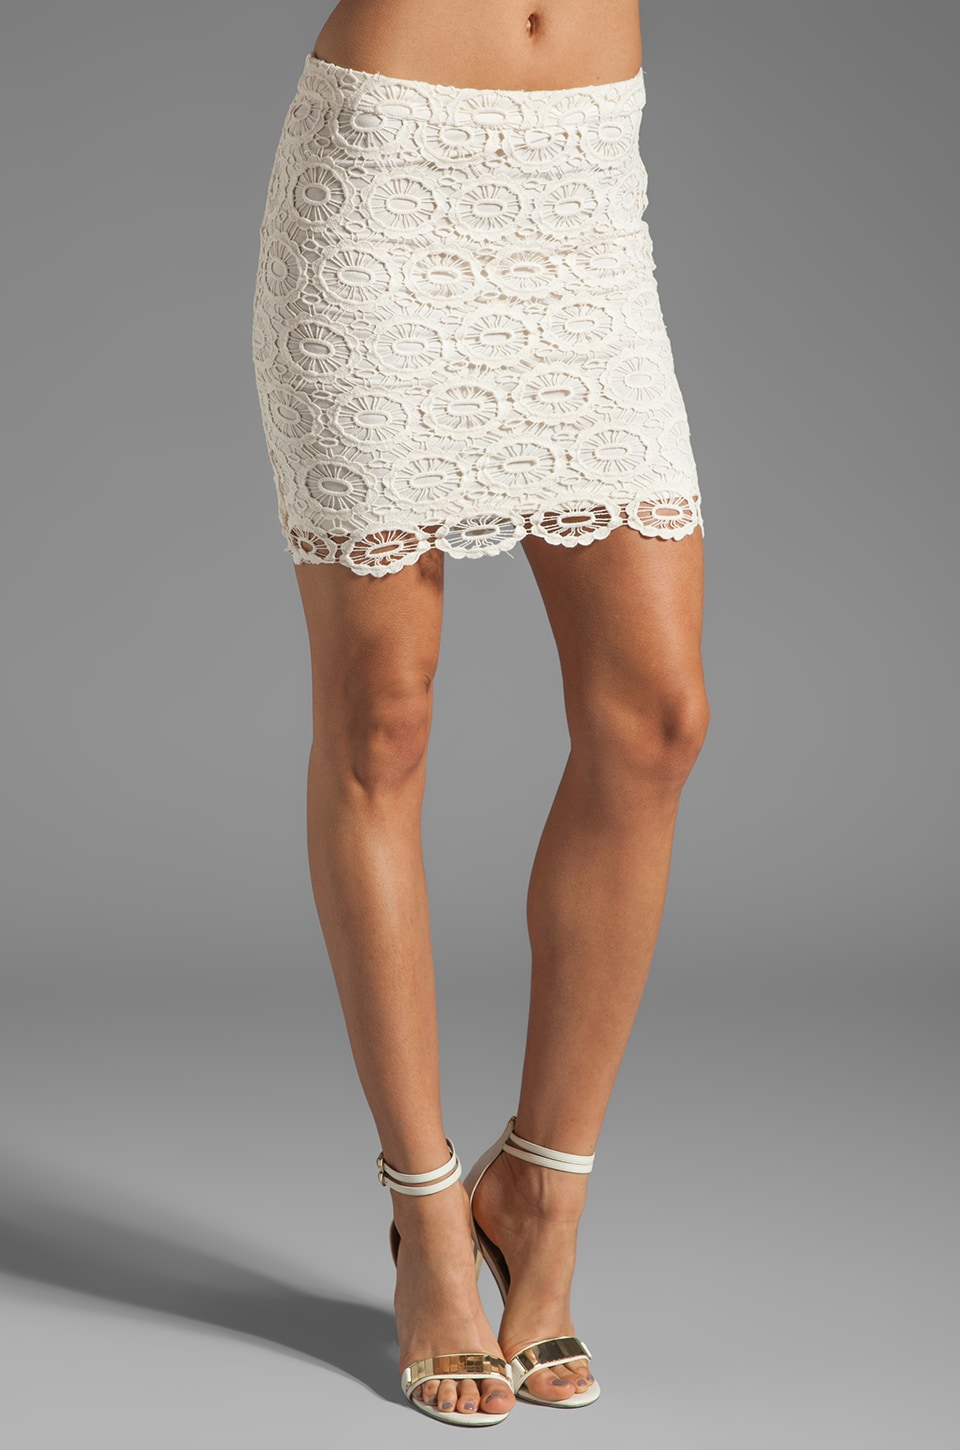 BB Dakota Williams Cotton Crochet Skirt in Ivory